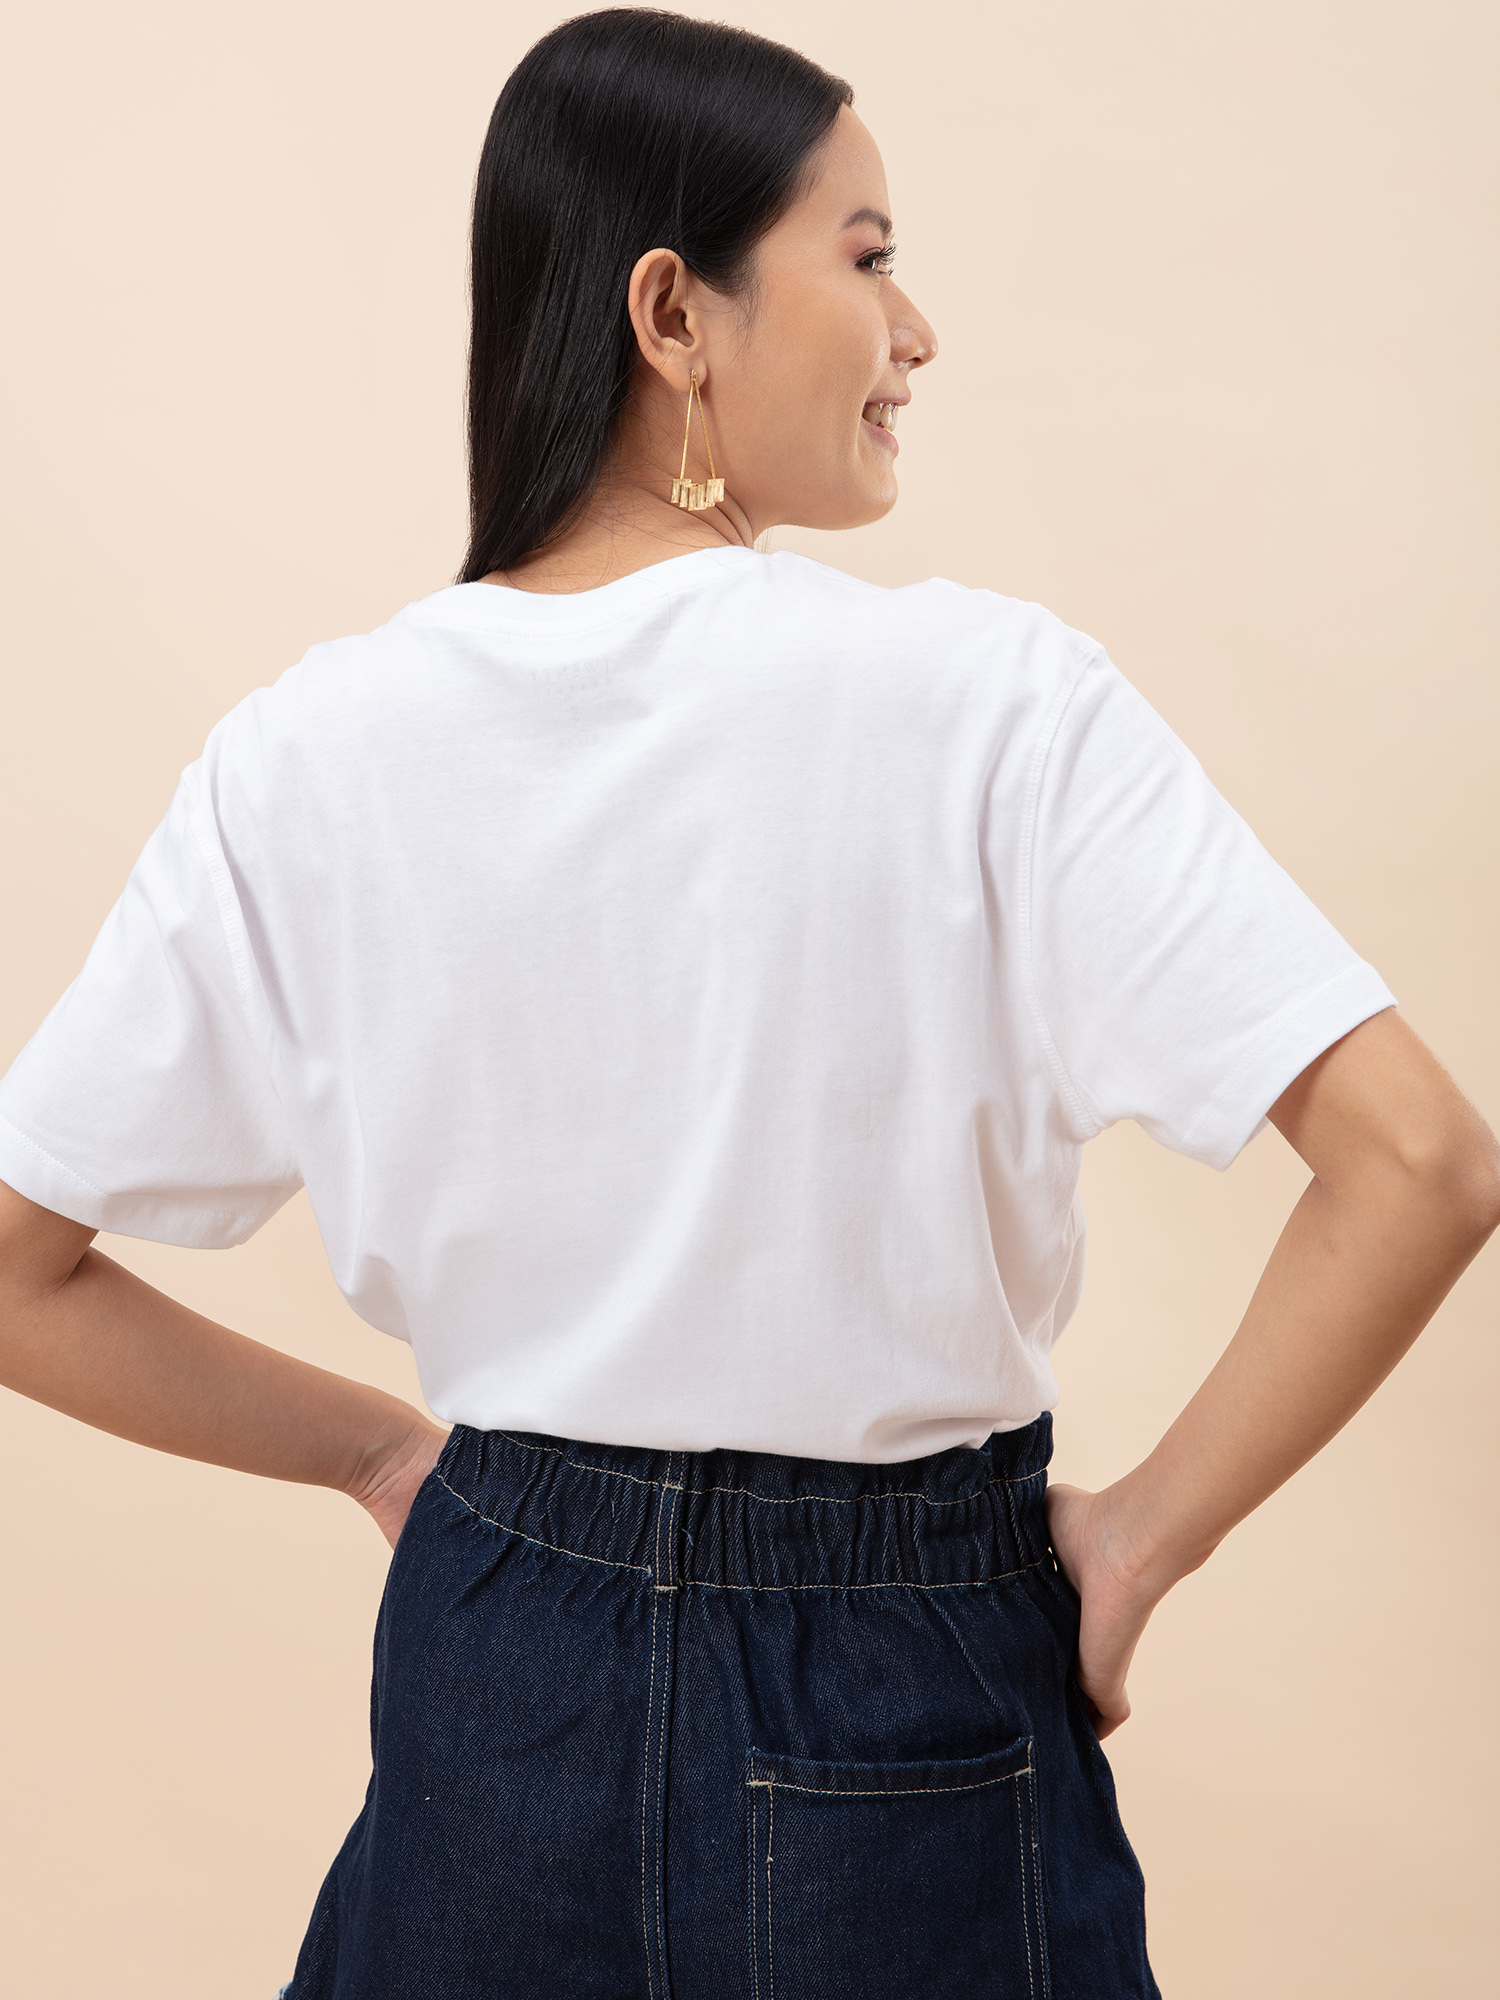 Tops-Oversized Love White T-shirt3